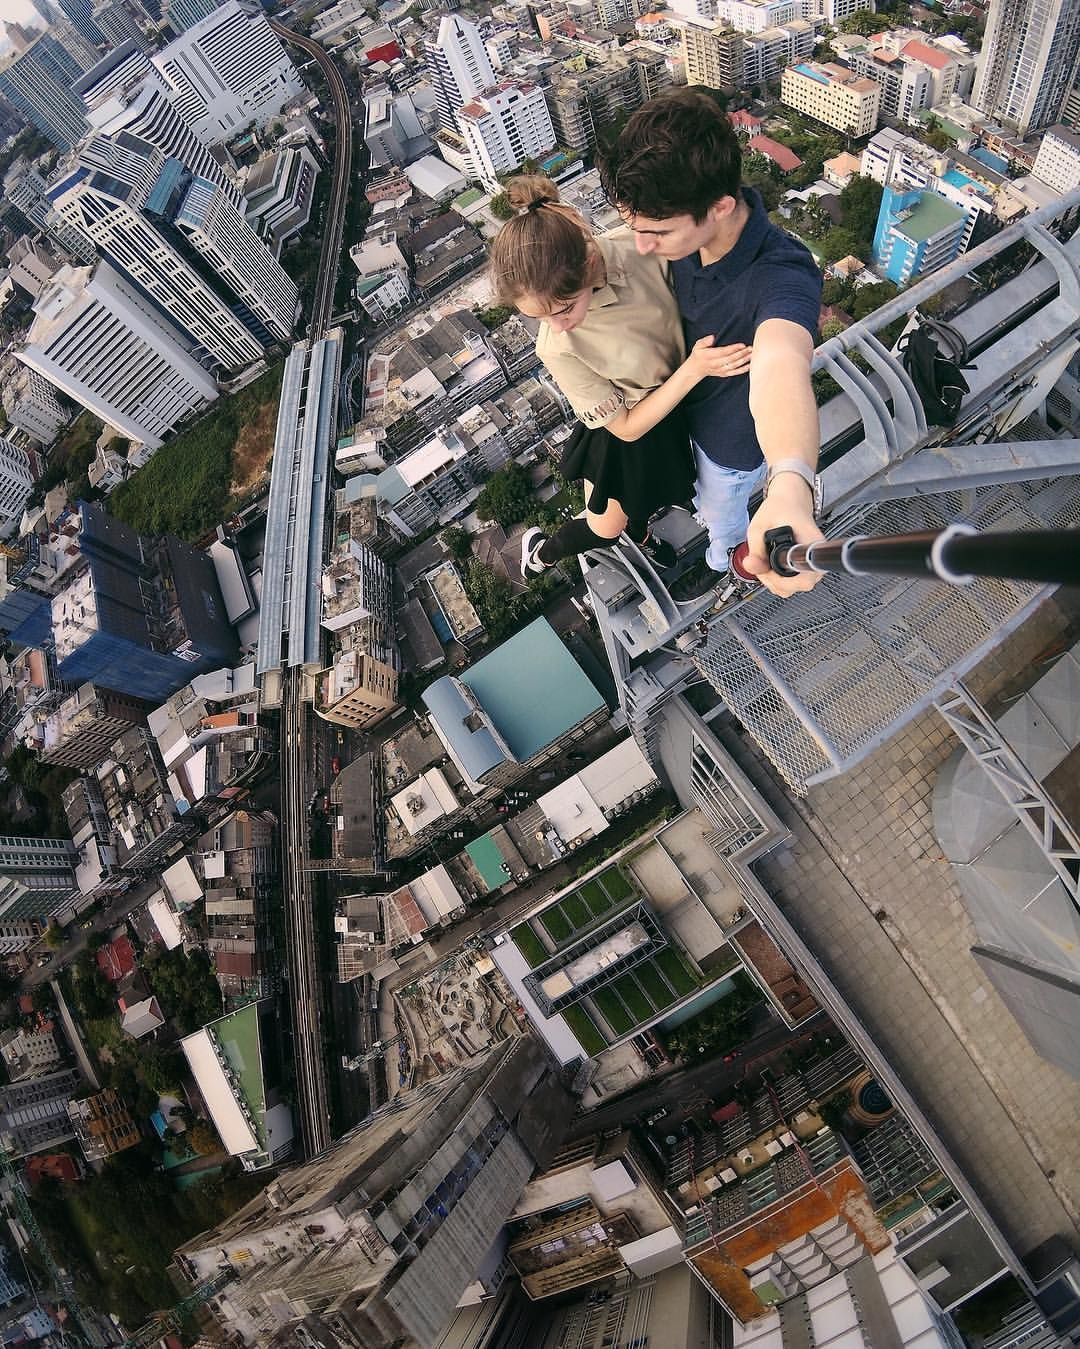 Likes Comments Ivan Angela Elevation On - Daredevil duo climb hong kongs buildings capture like youve never seen